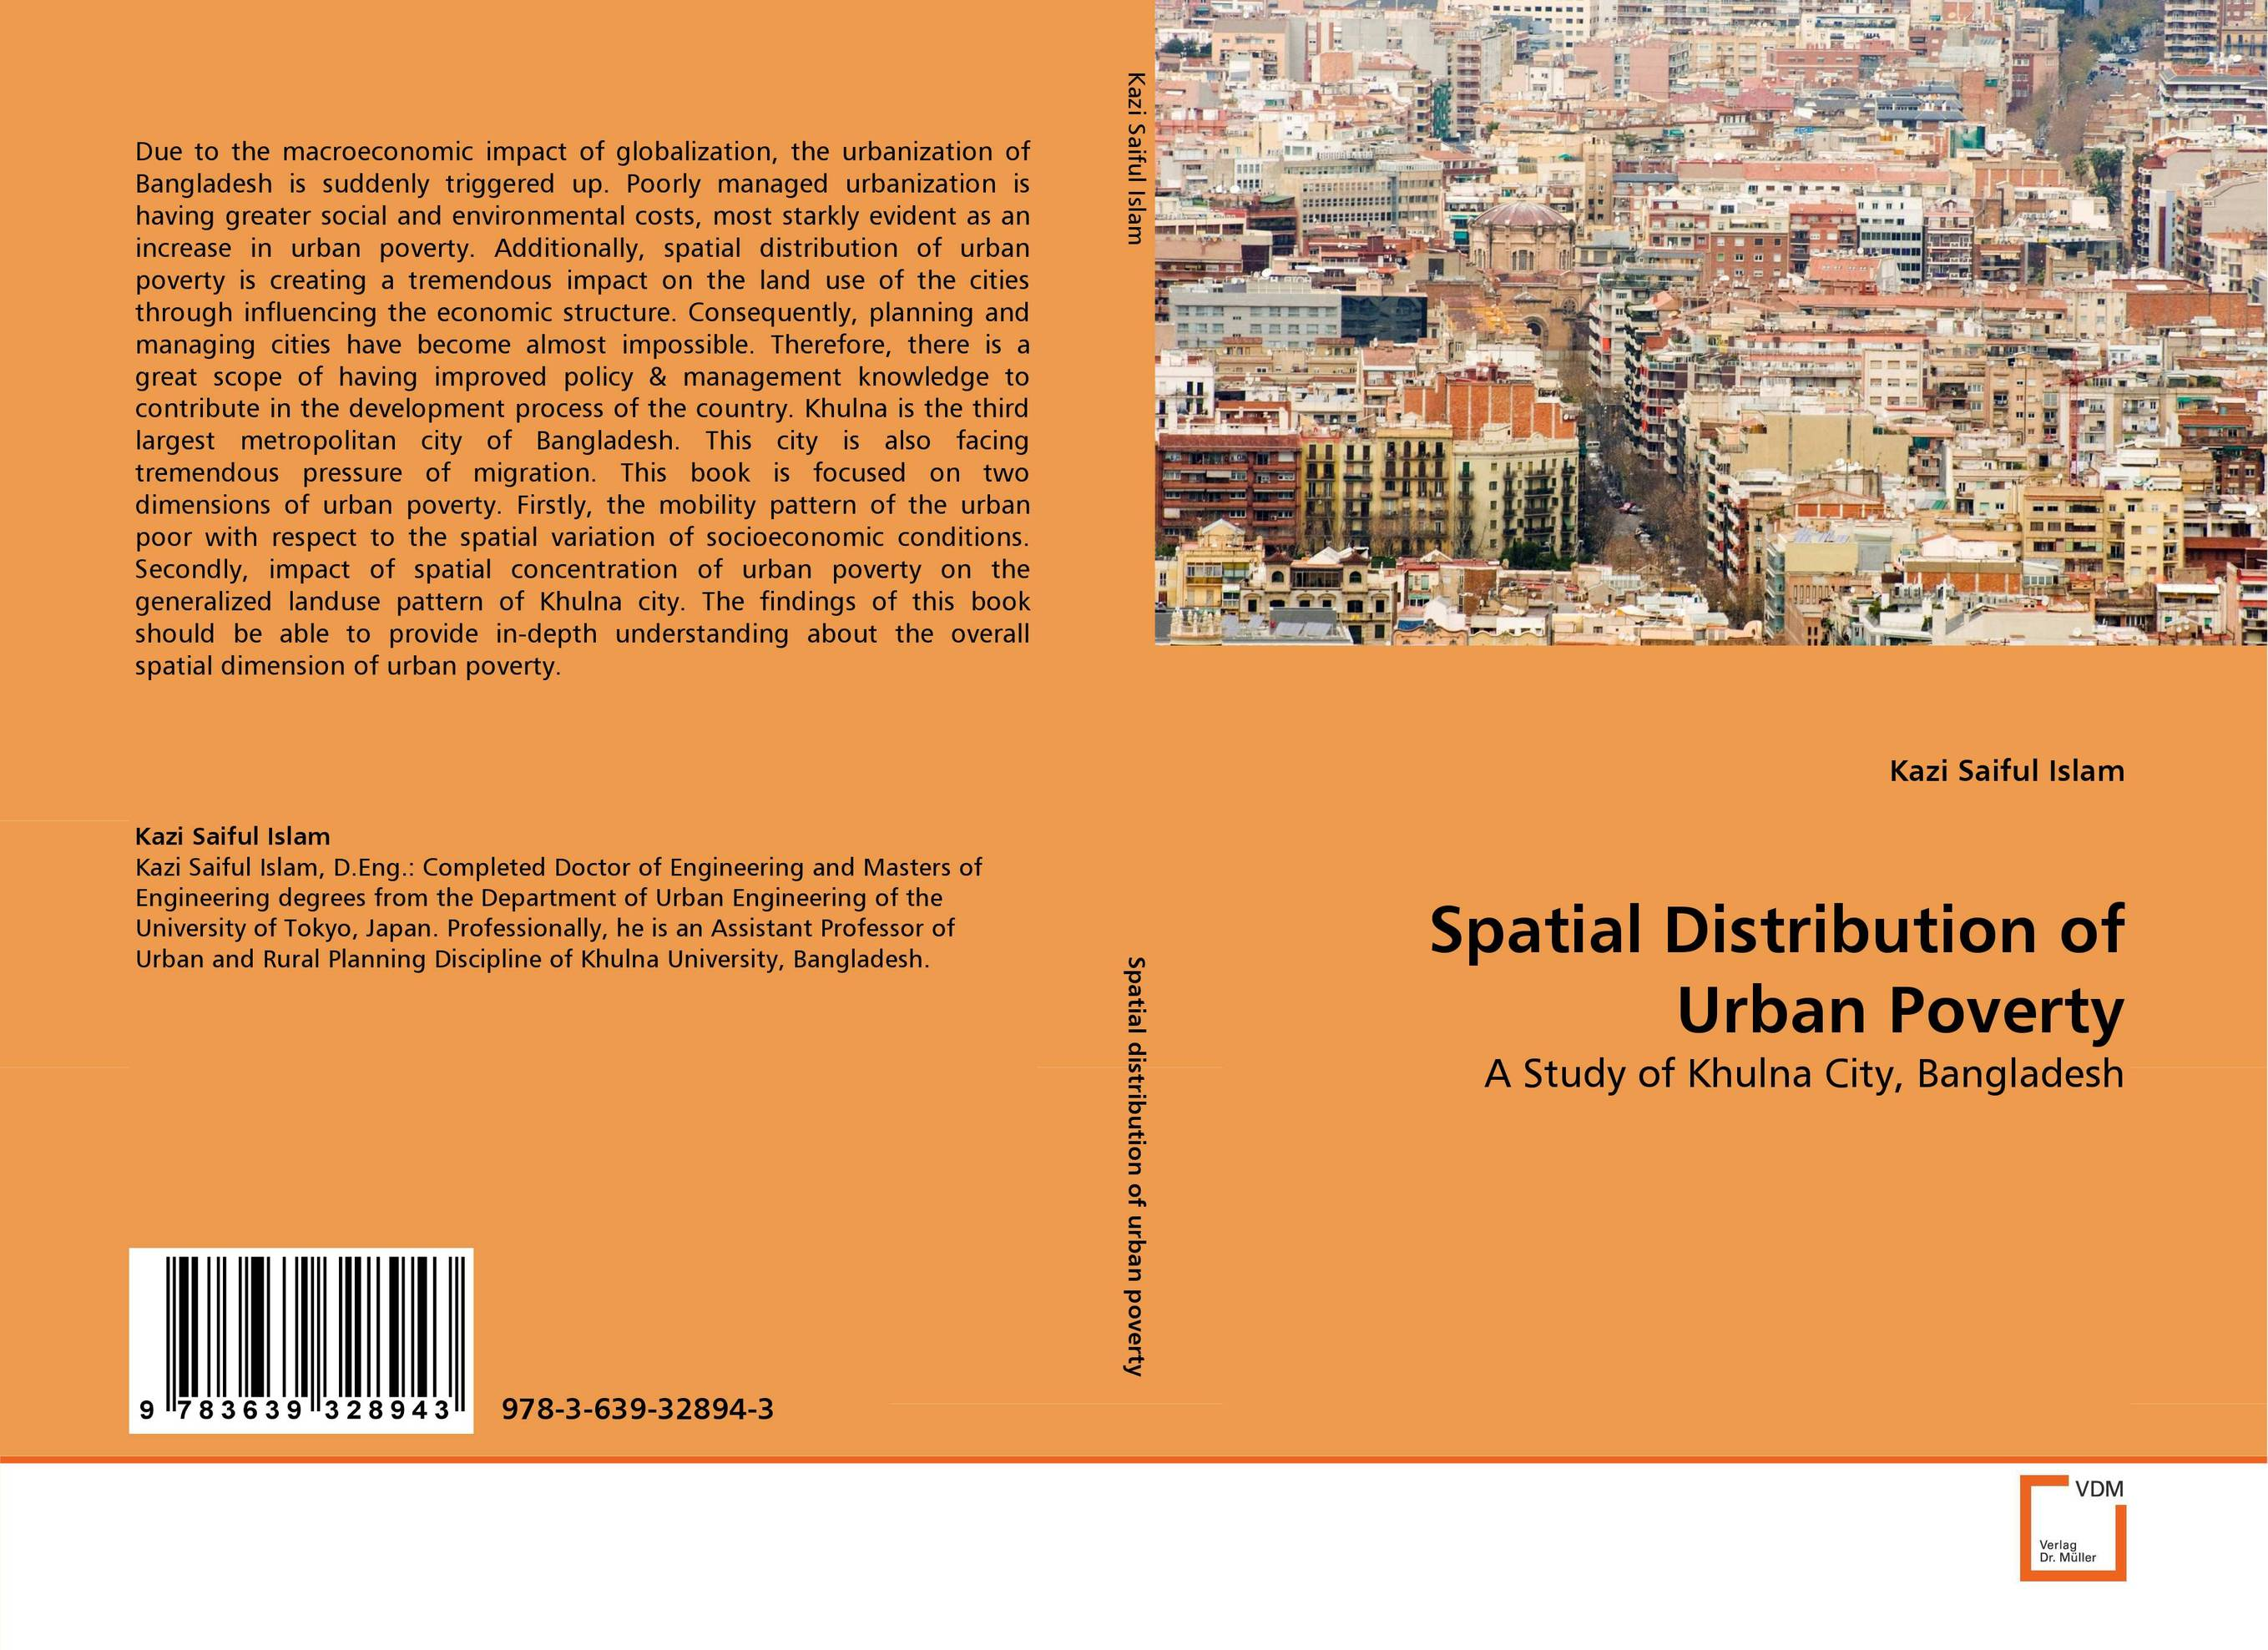 Spatial Distribution of Urban Poverty esprit esprit esrg 91484 a